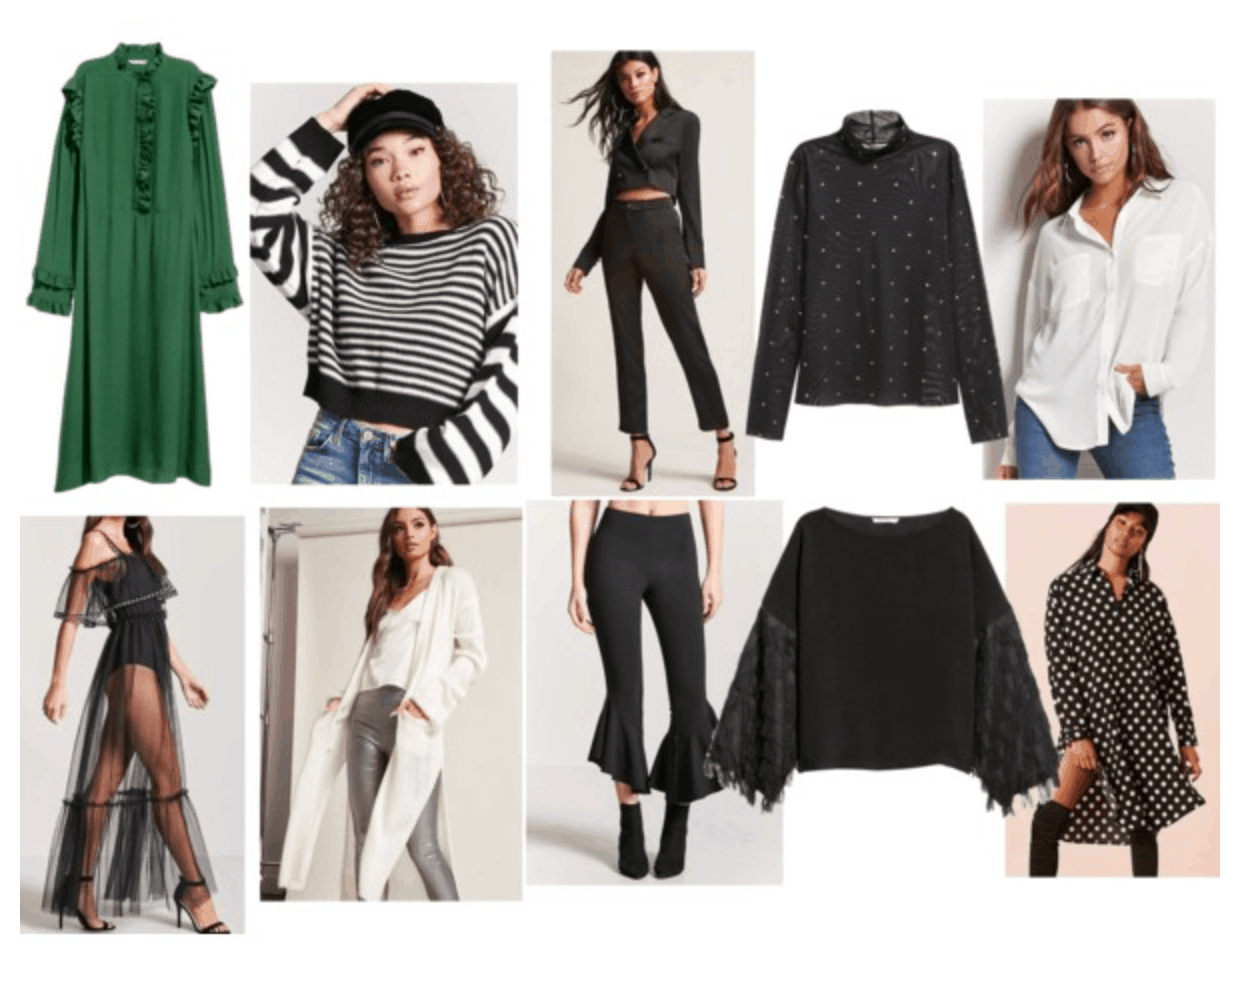 Janelle Monae style: Capsule Wardrobe inspired by Janelle's black and white monochrome look